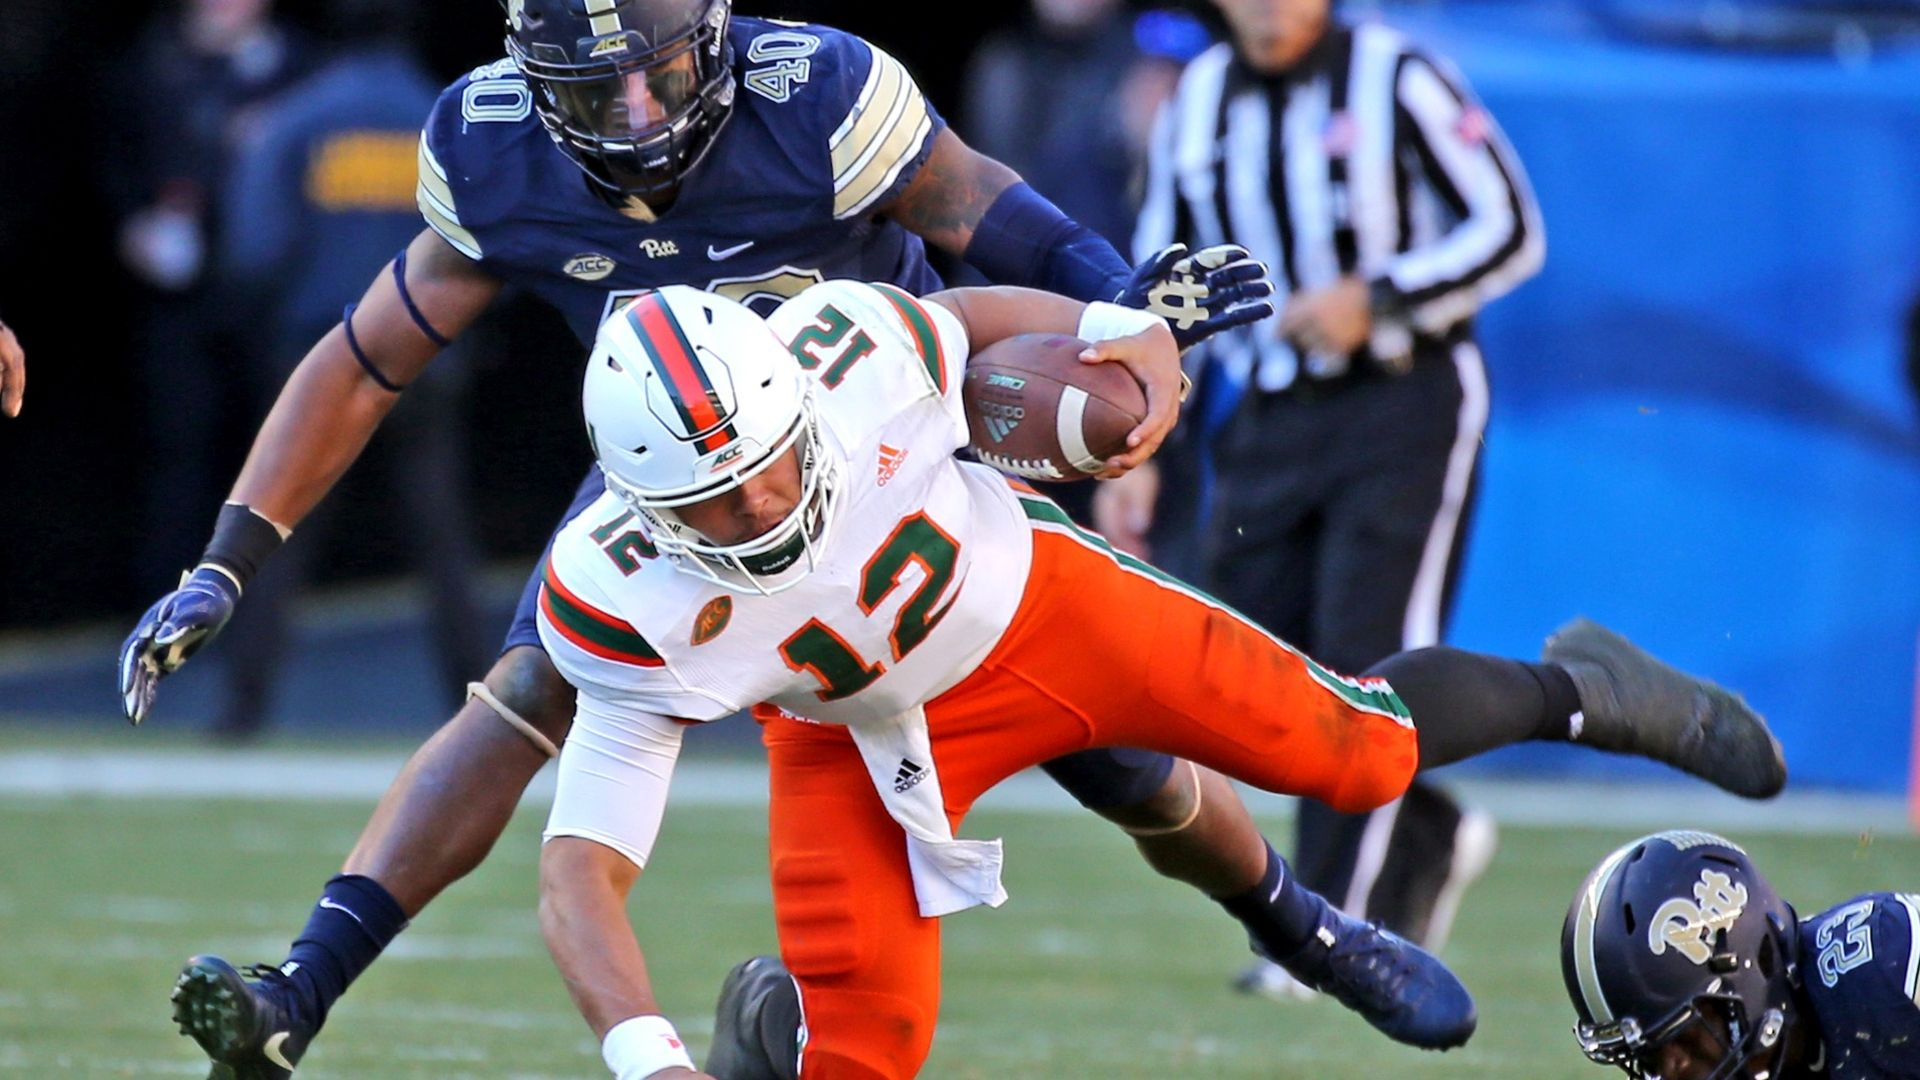 Pitt's upset of No. 2 Miami is history repeated